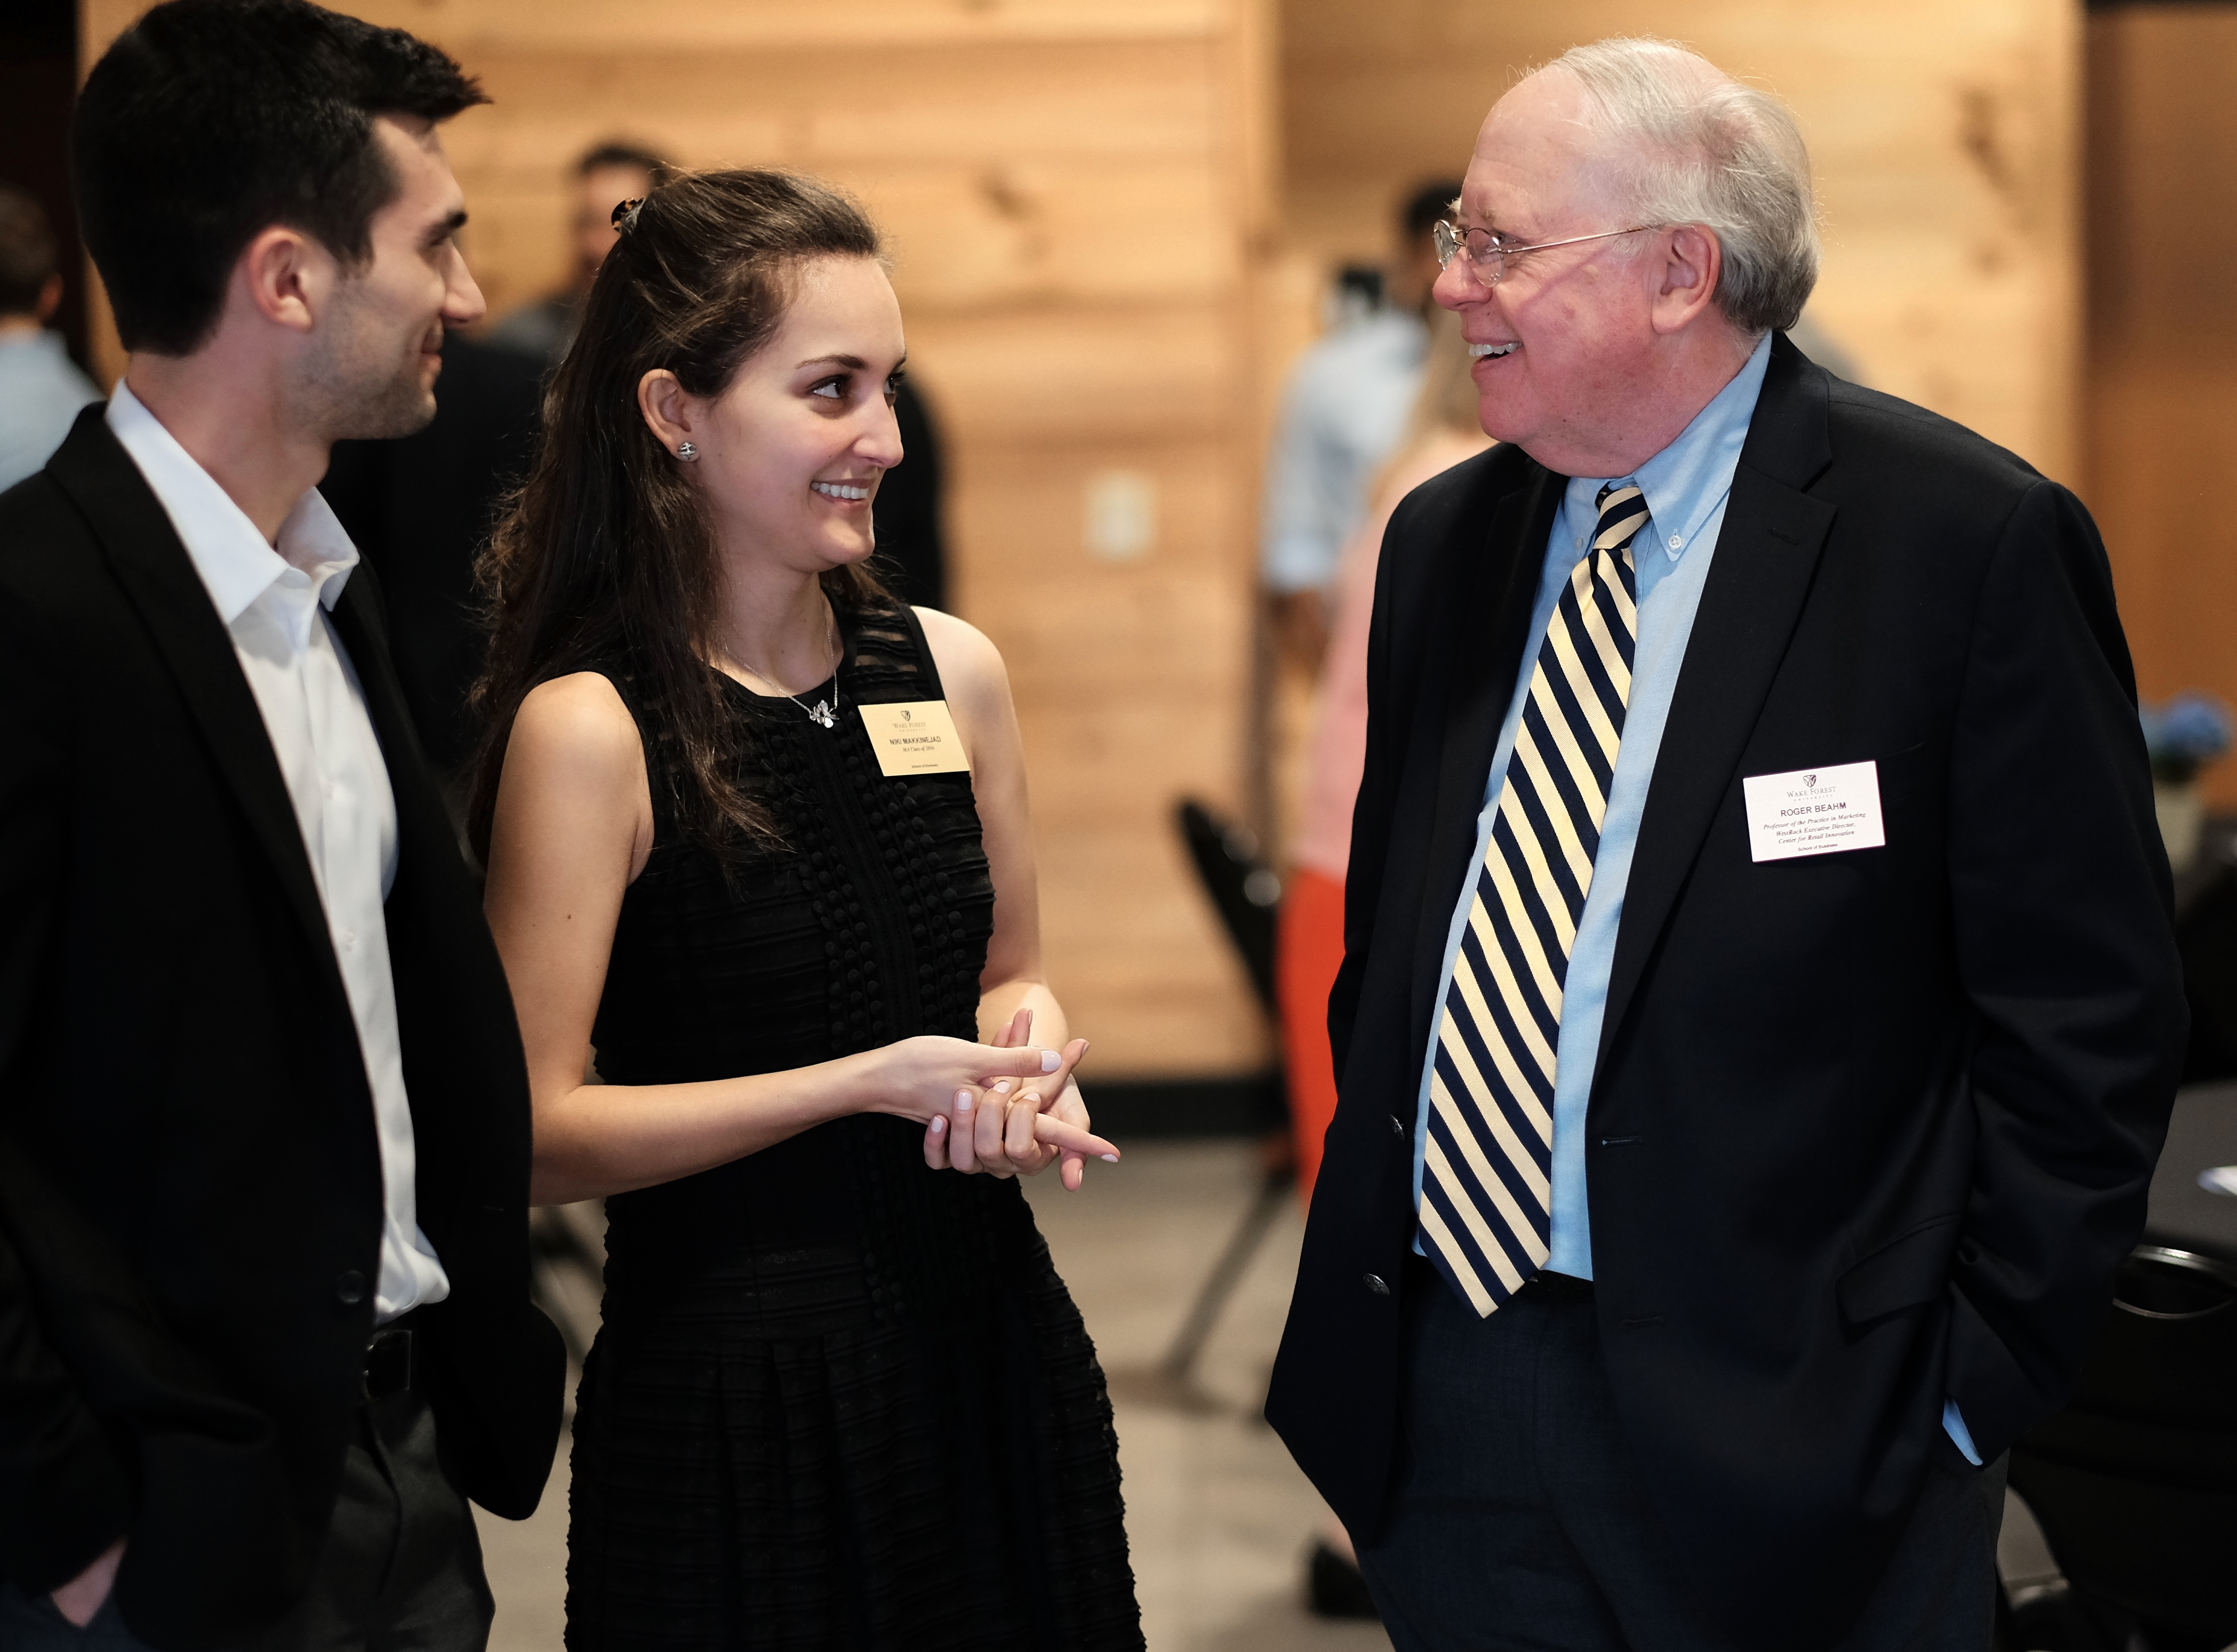 The 2016 Marketing Analytics Summit / Inmar Analytics Forum held their reception and dinner in the Barn on the WFU Campus. Undergrad winners were announced and graduate top teams advanced to the next day competition.